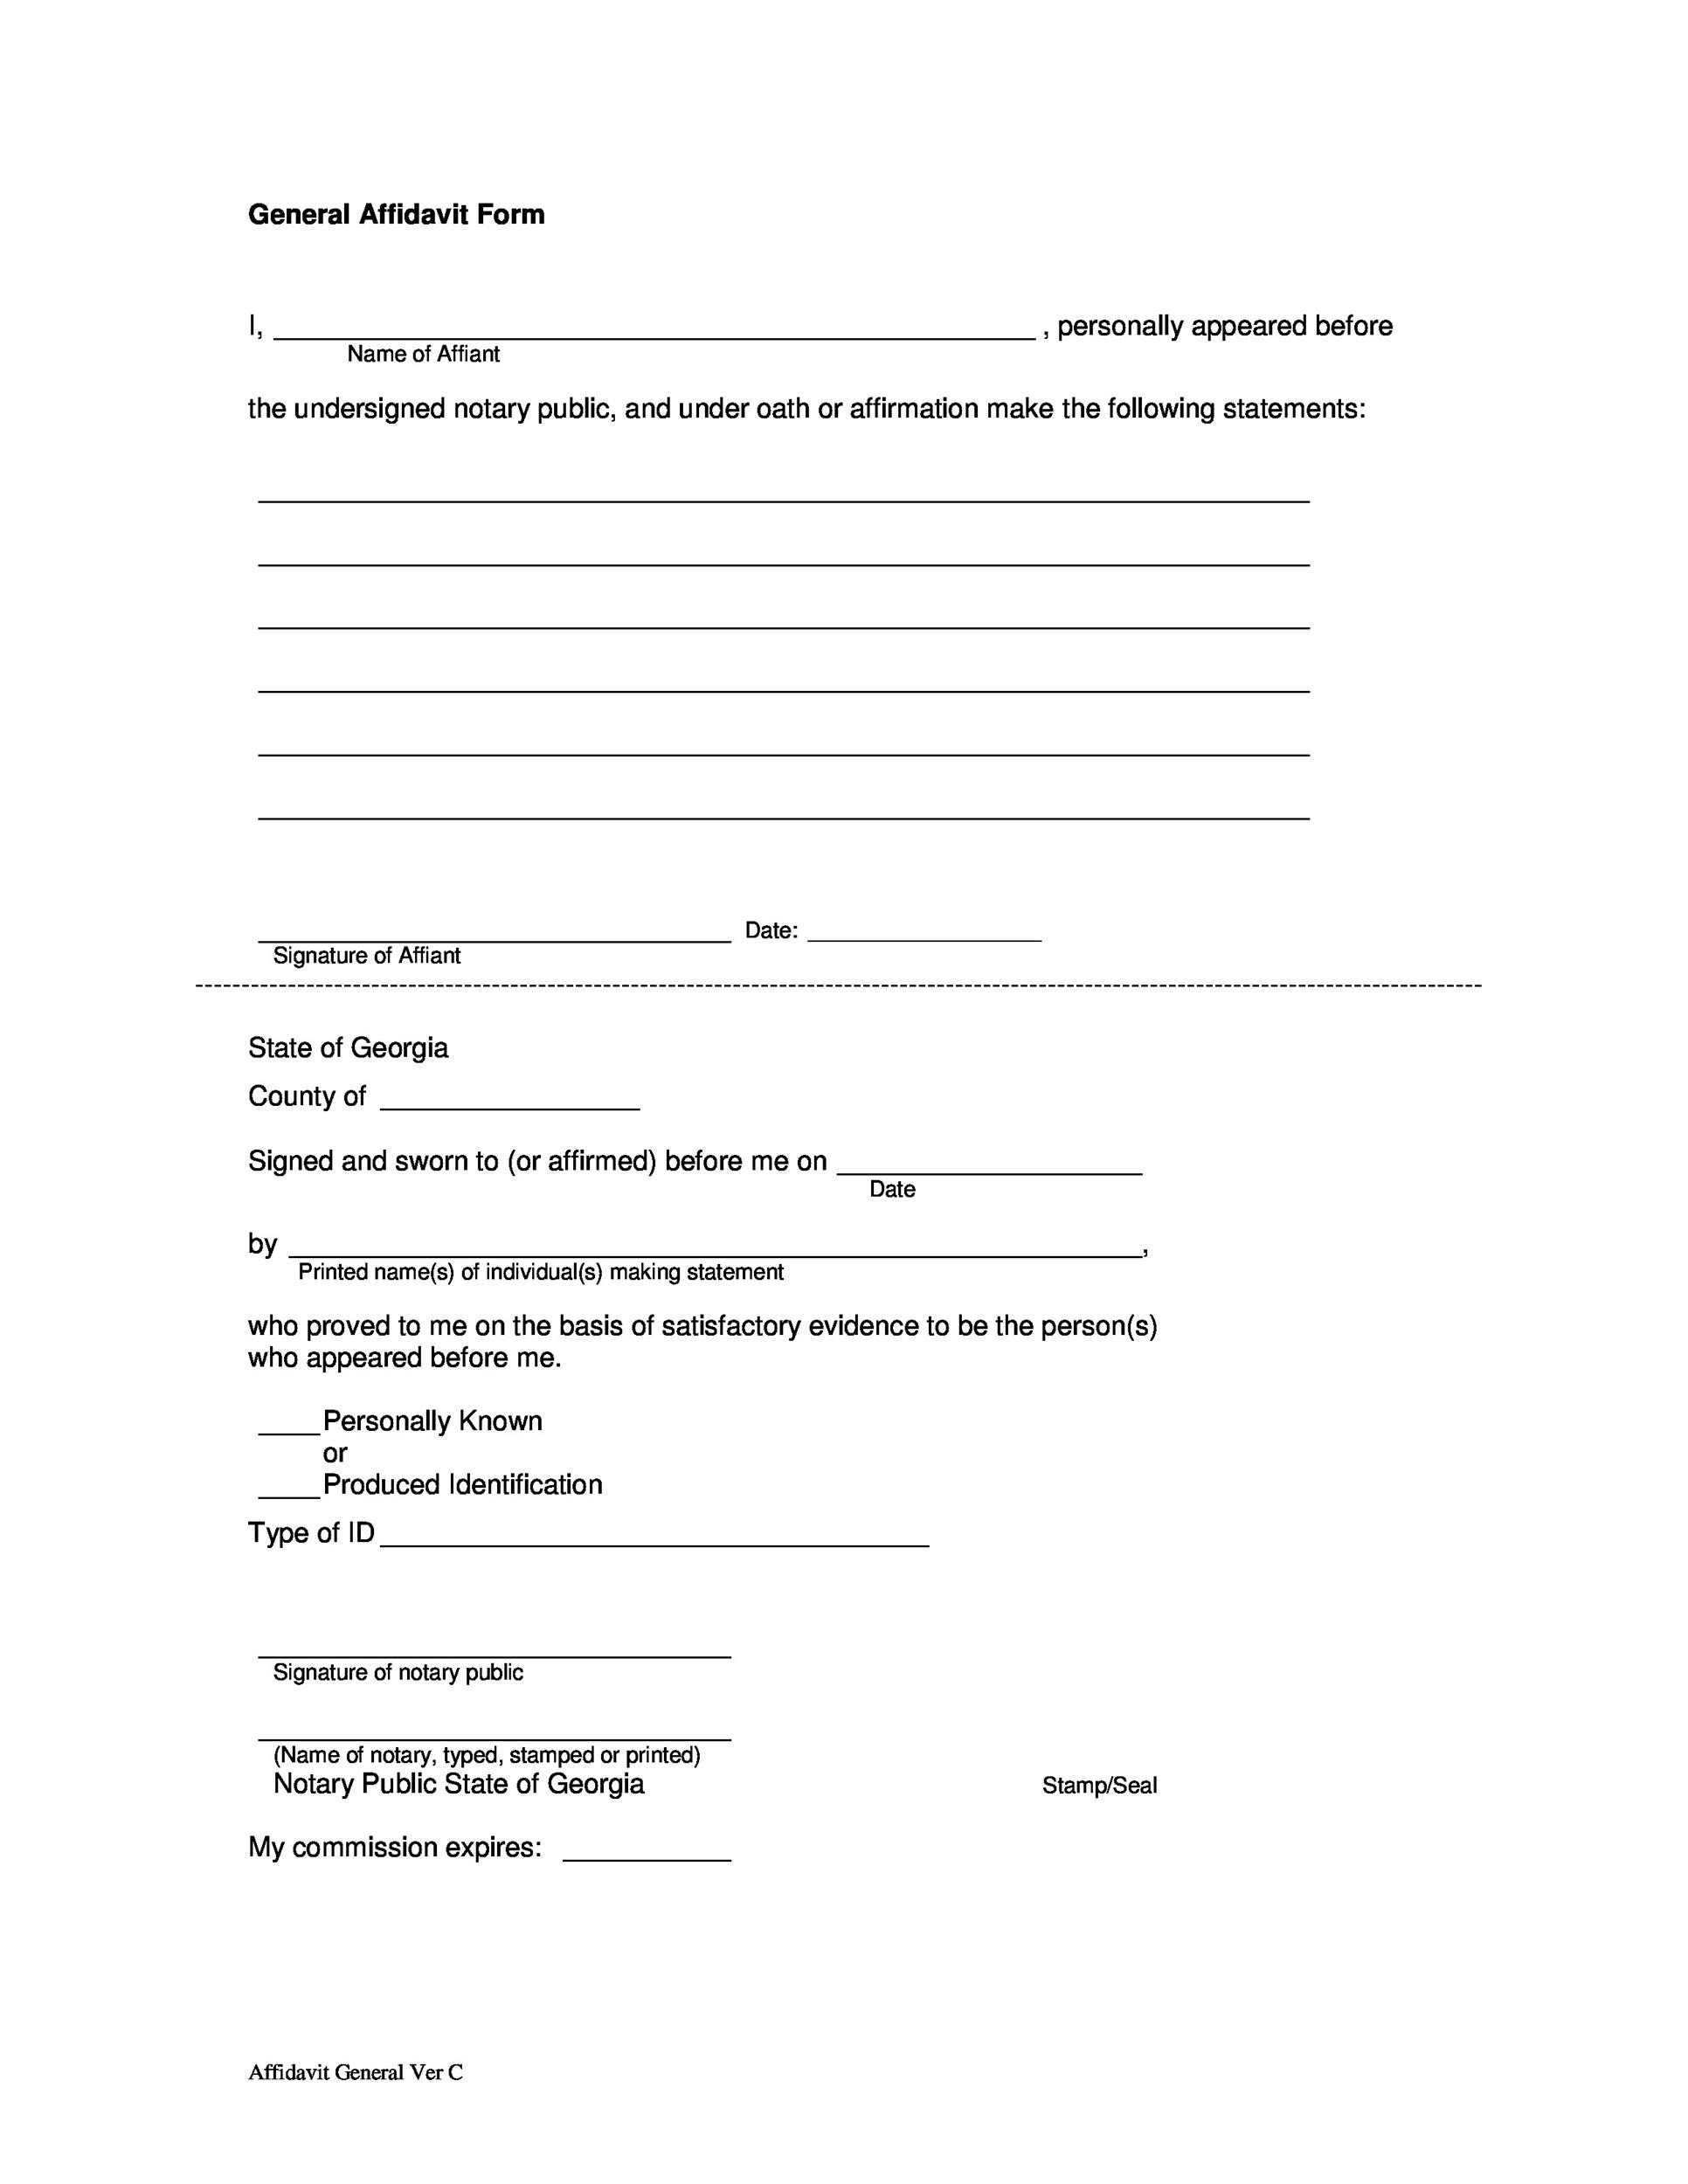 48 sample affidavit forms templates affidavit of support form printable affidavit form 12 altavistaventures Choice Image